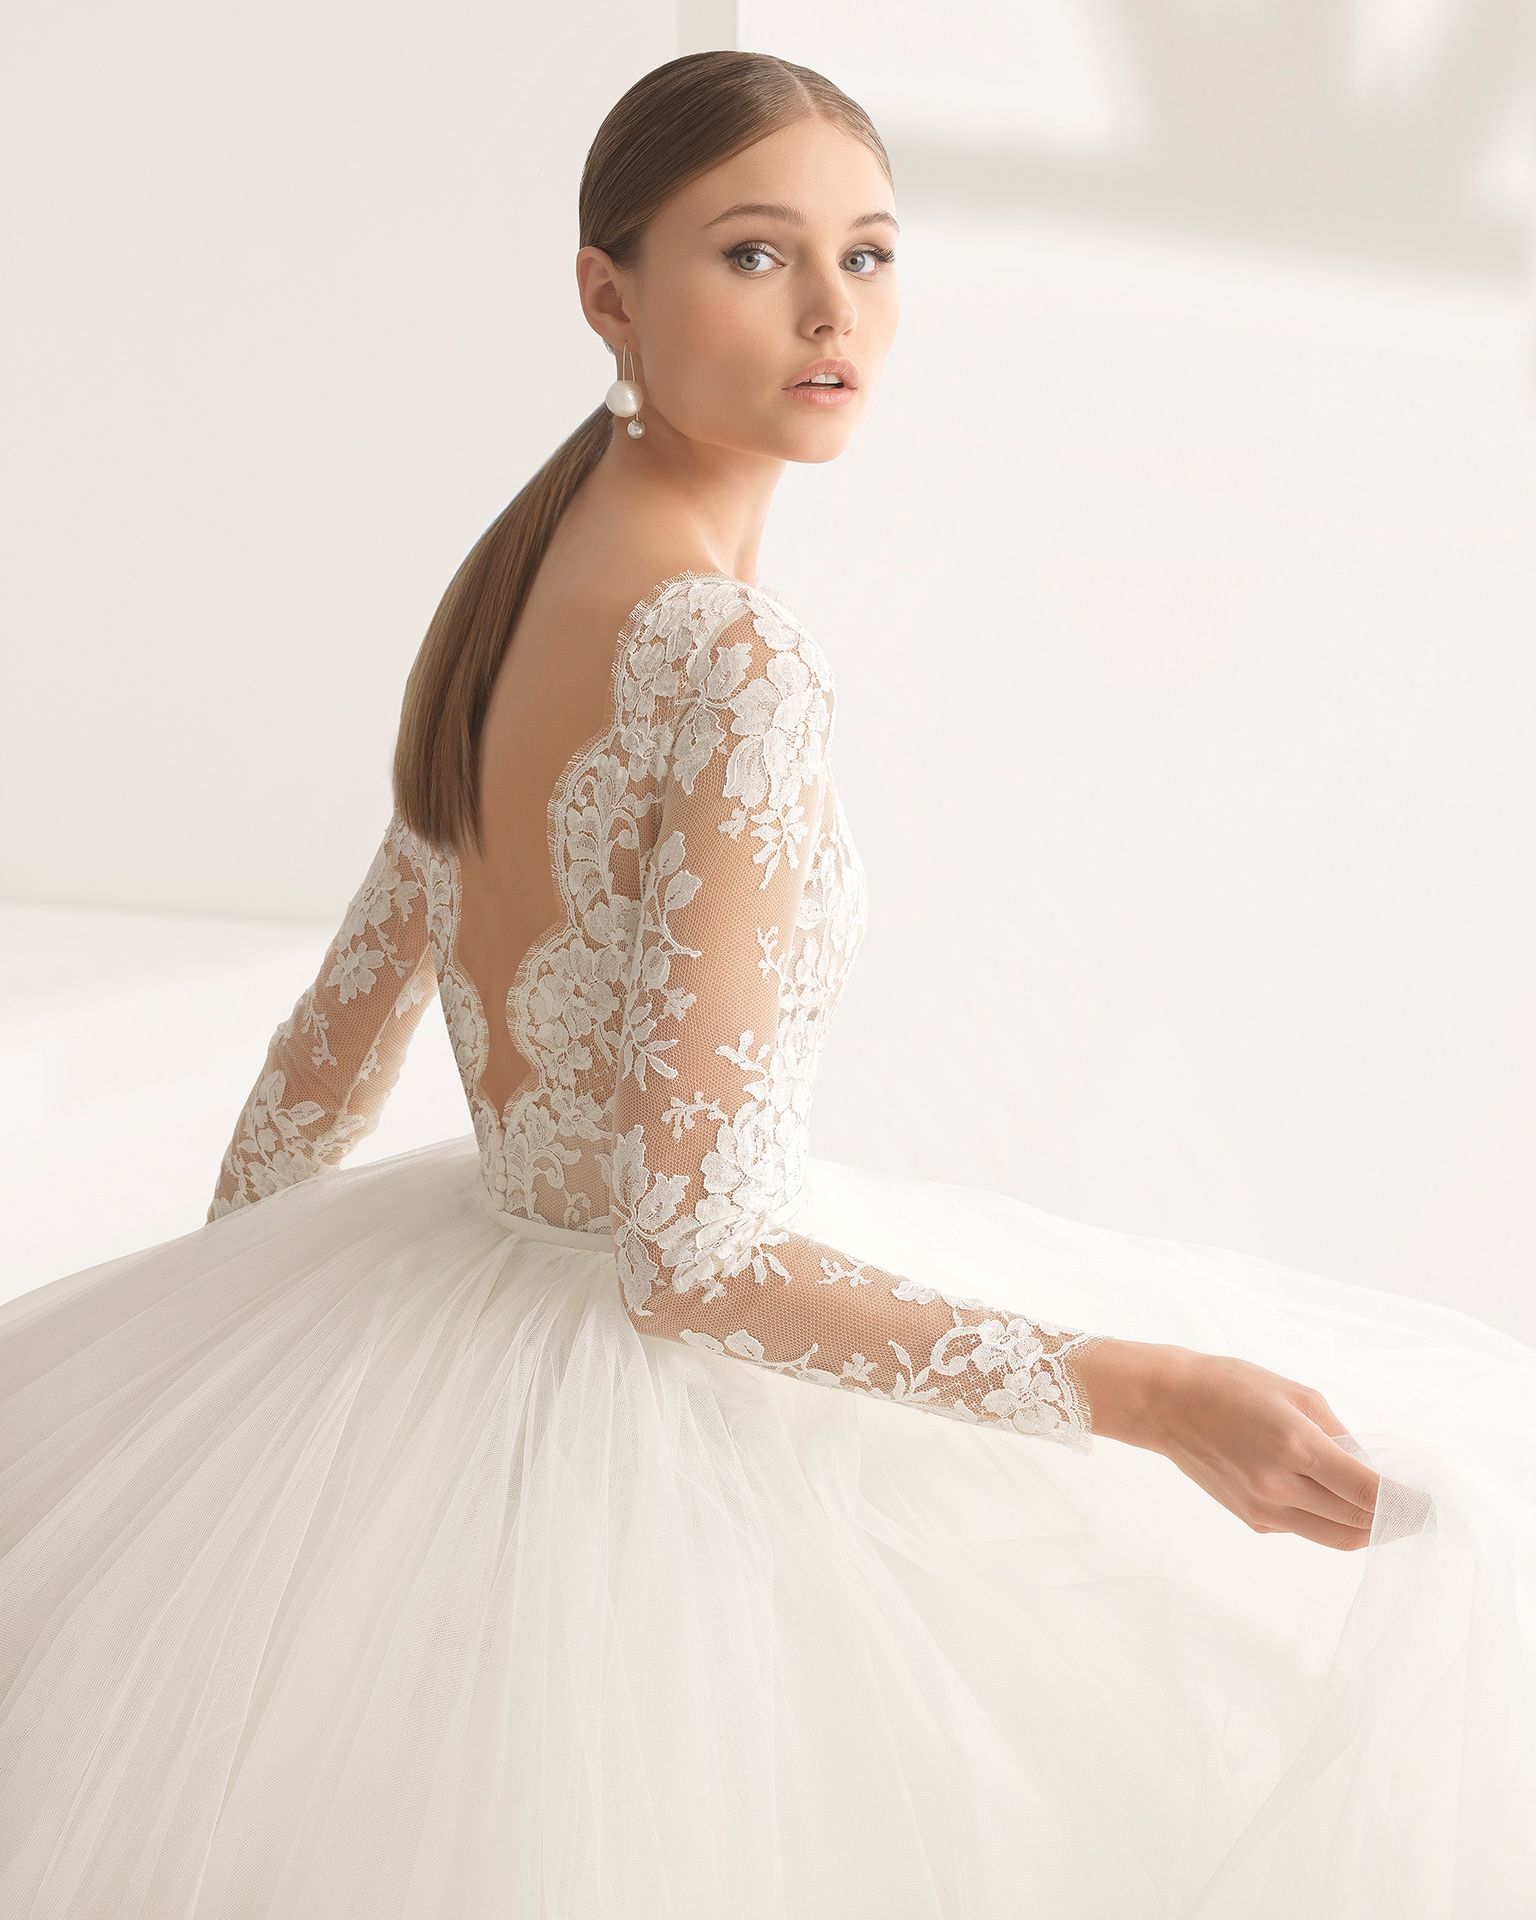 Niher bridal collection rosa clará couture collection